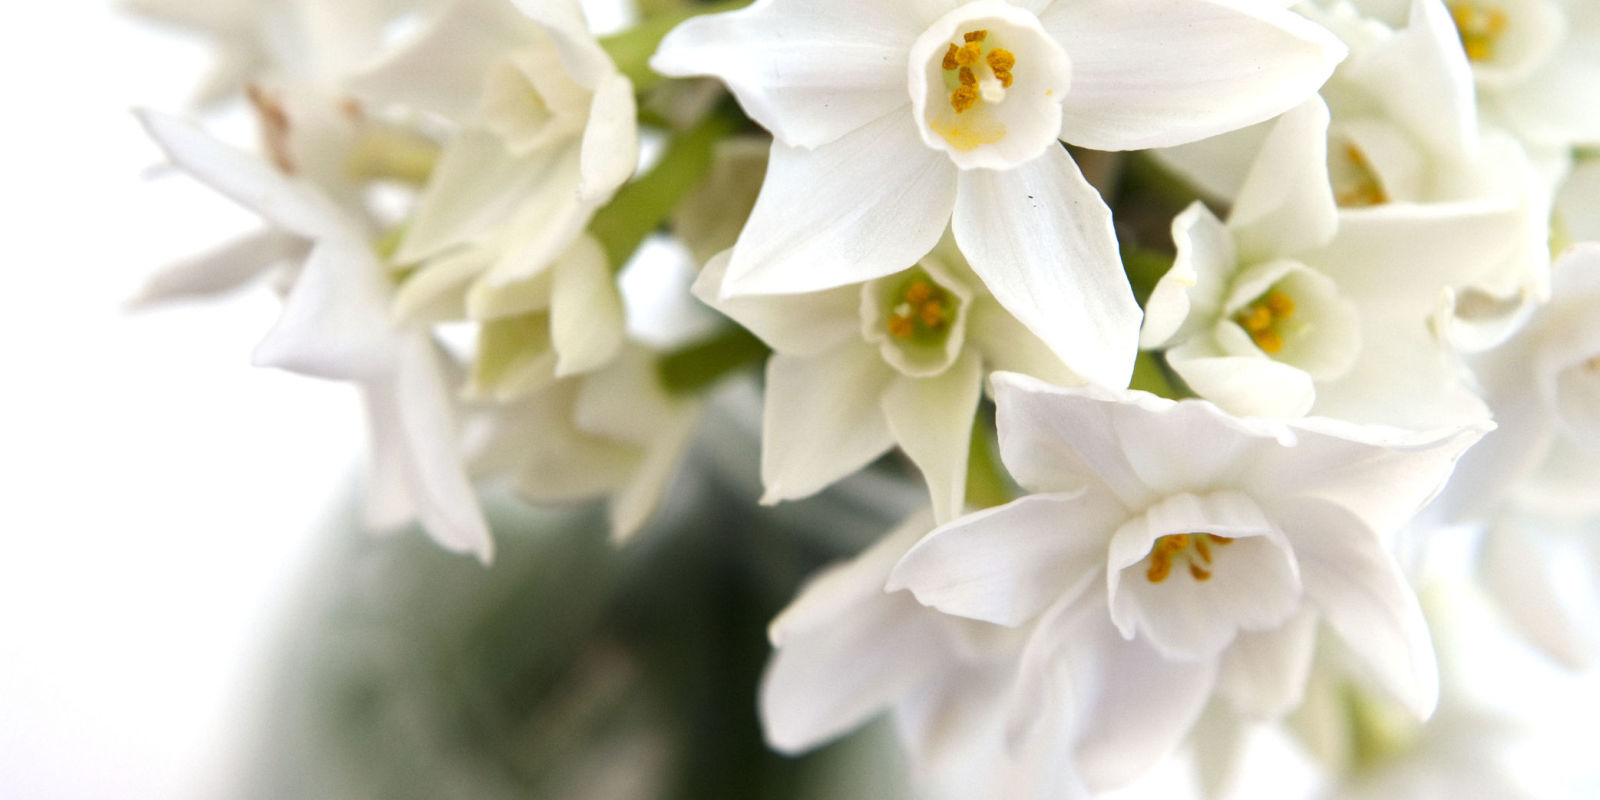 Plant Indoor Bulbs For Flowers At Christmas